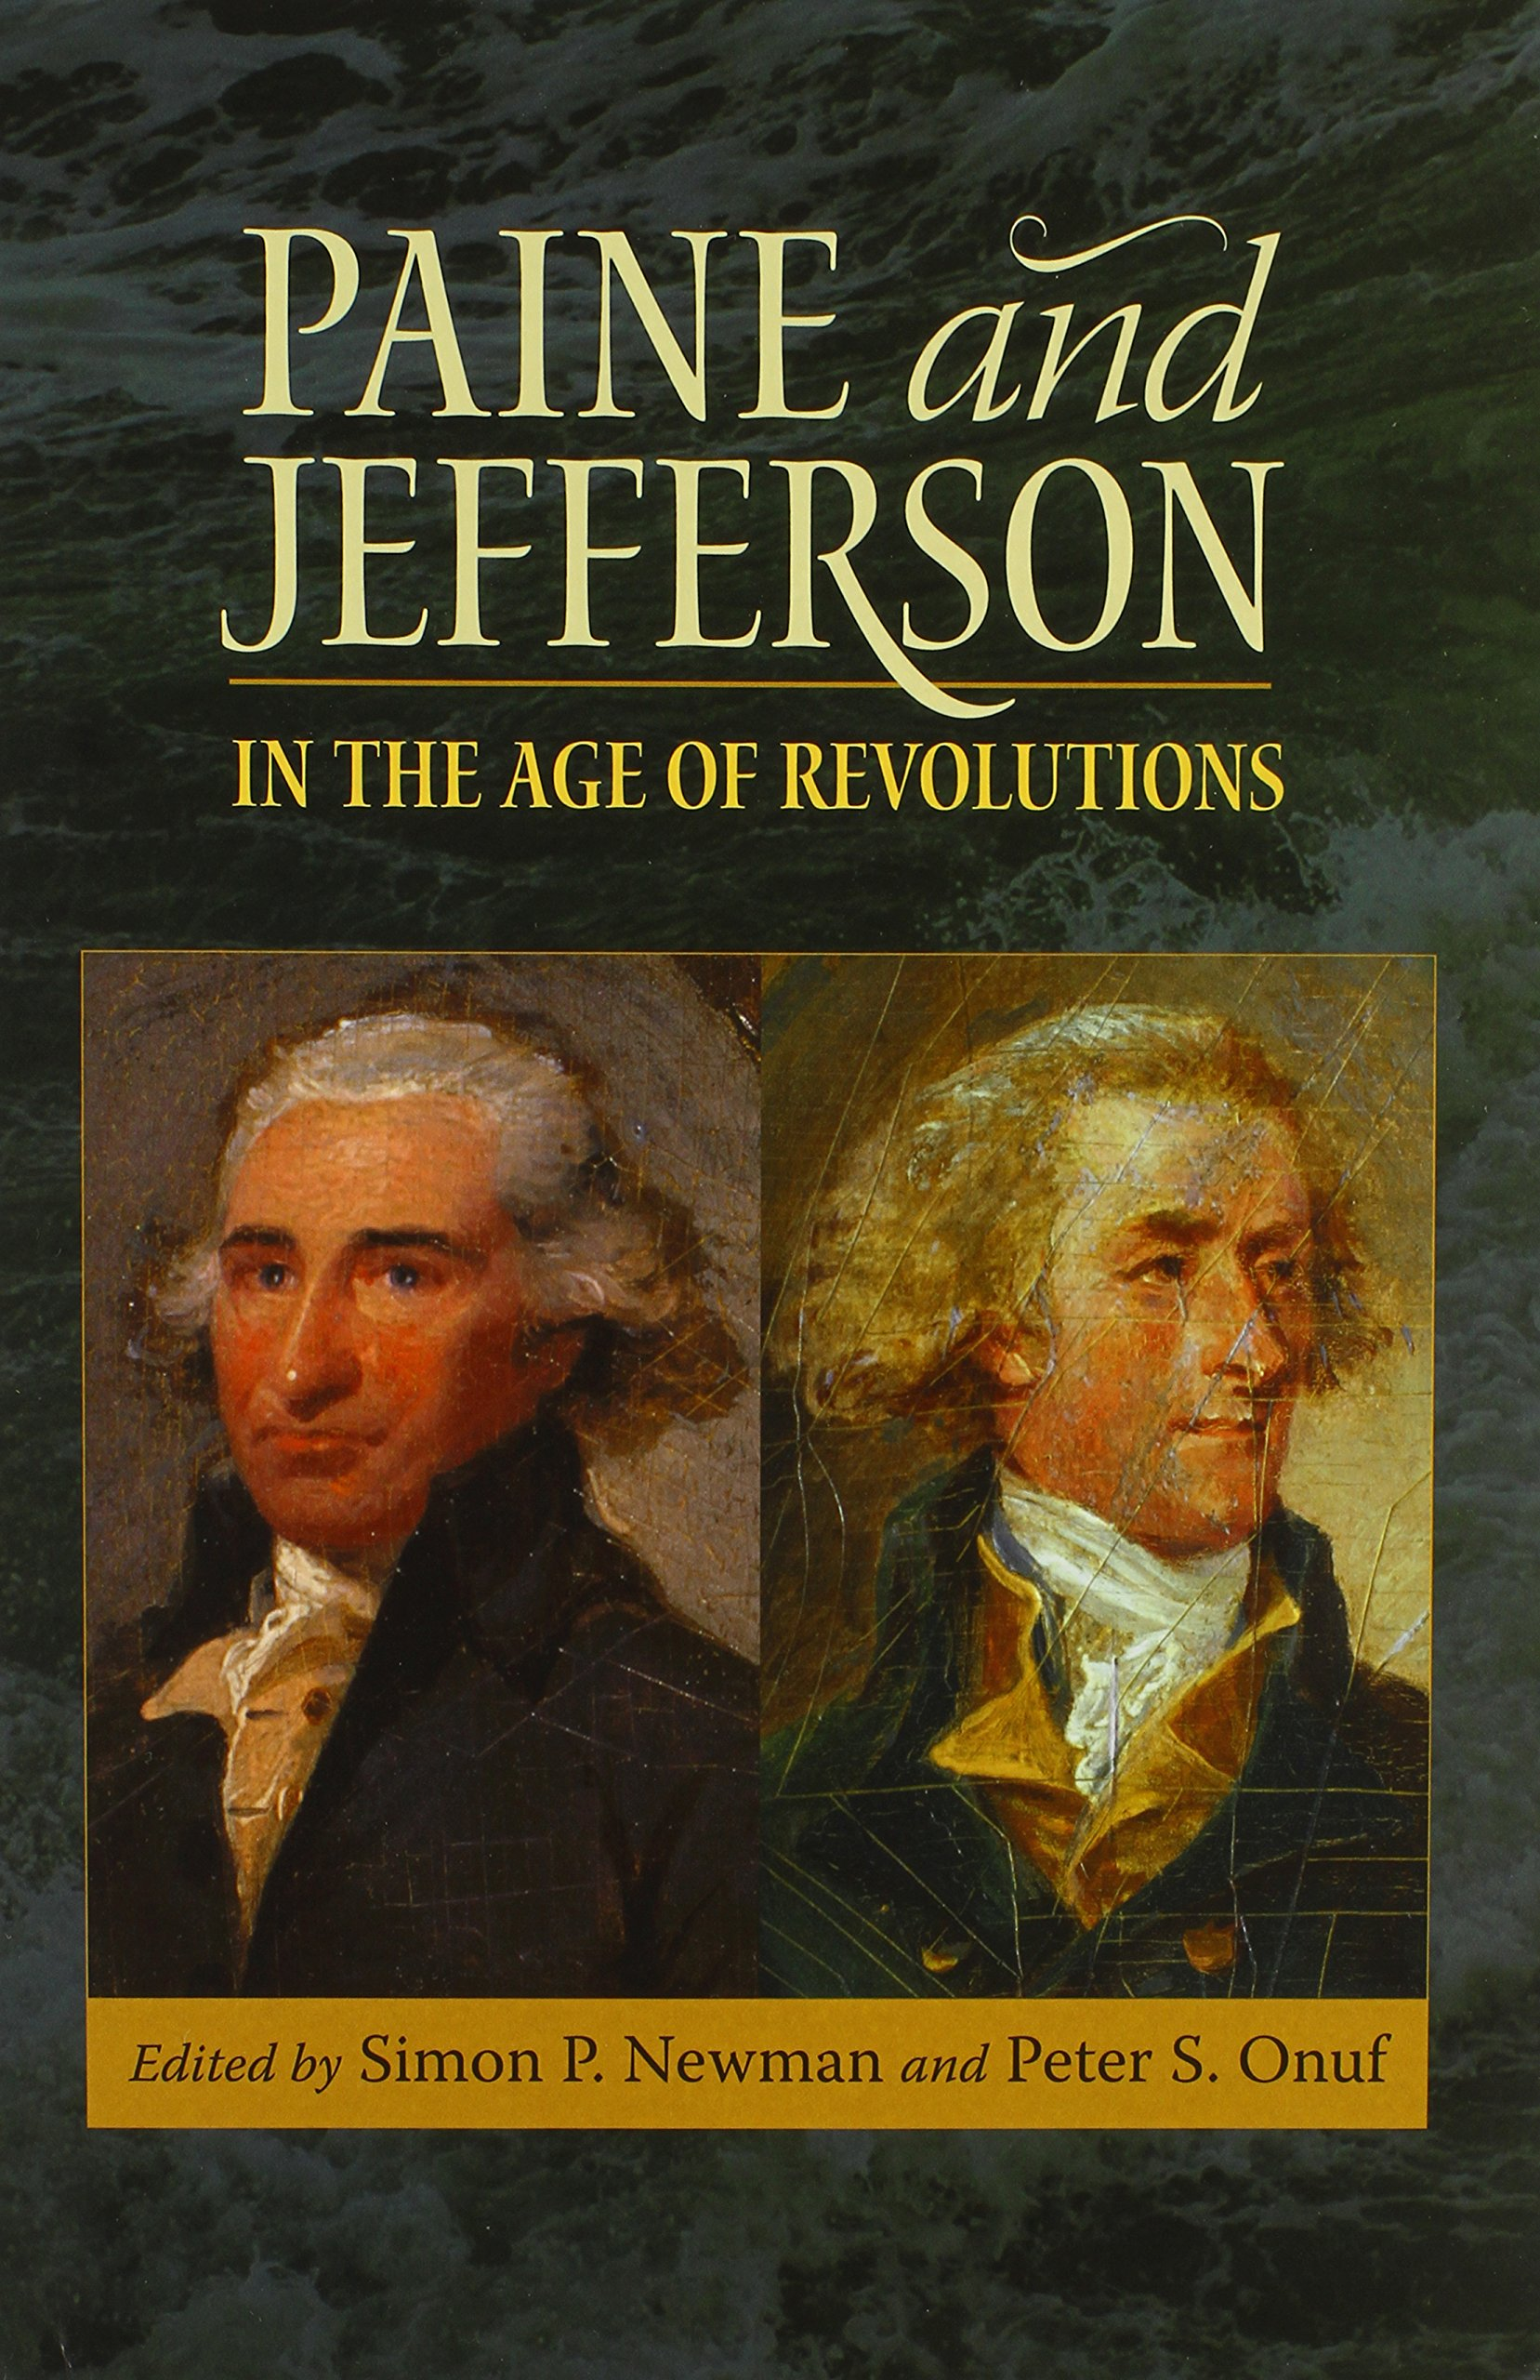 Paine and Jefferson in the Age of Revolutions (Jeffersonian America)